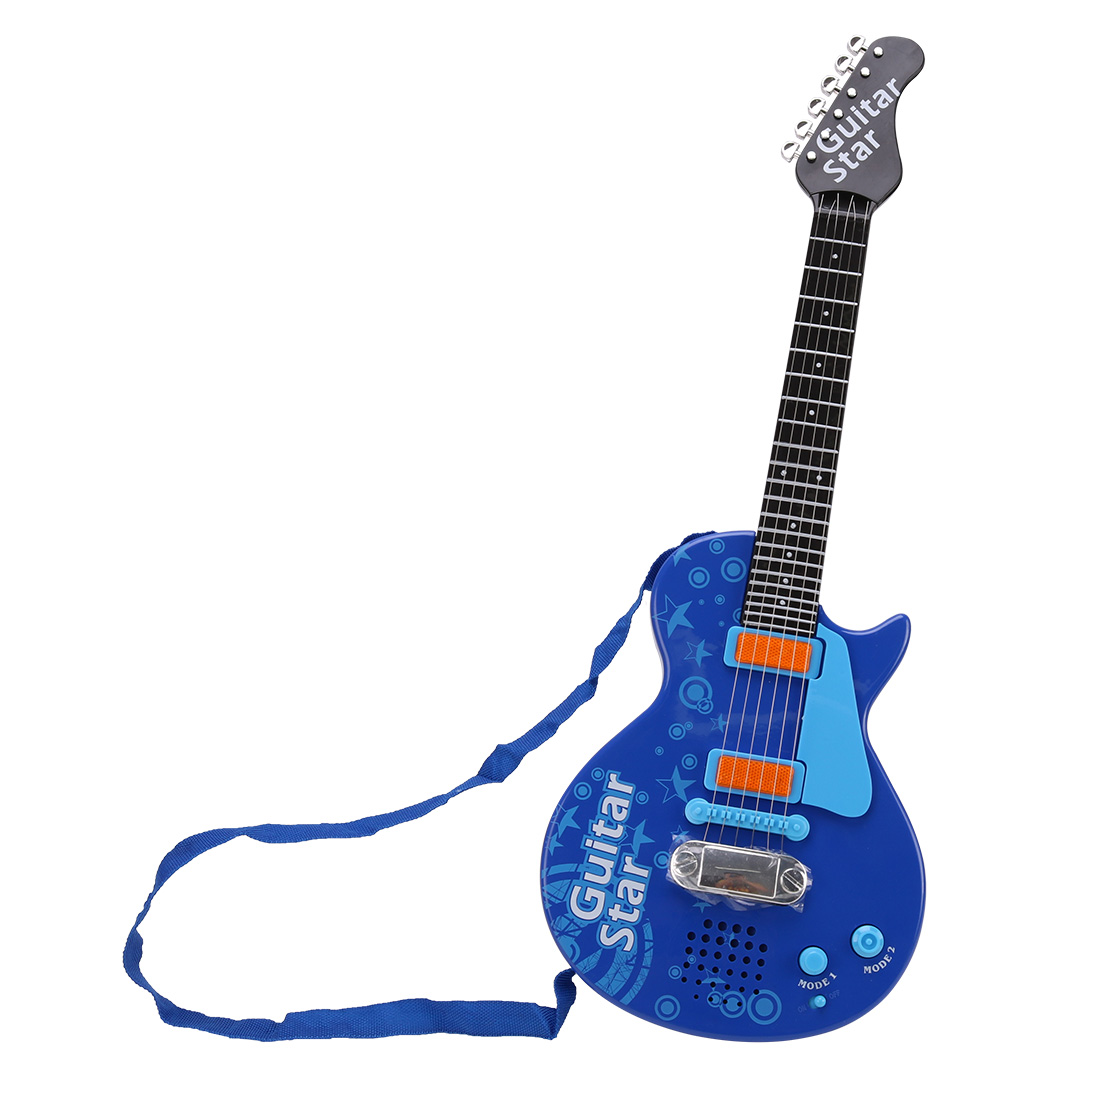 Toy Musical Instrument Pink Ksl355830 Electric Guitar Musical Instrument Toy For Children